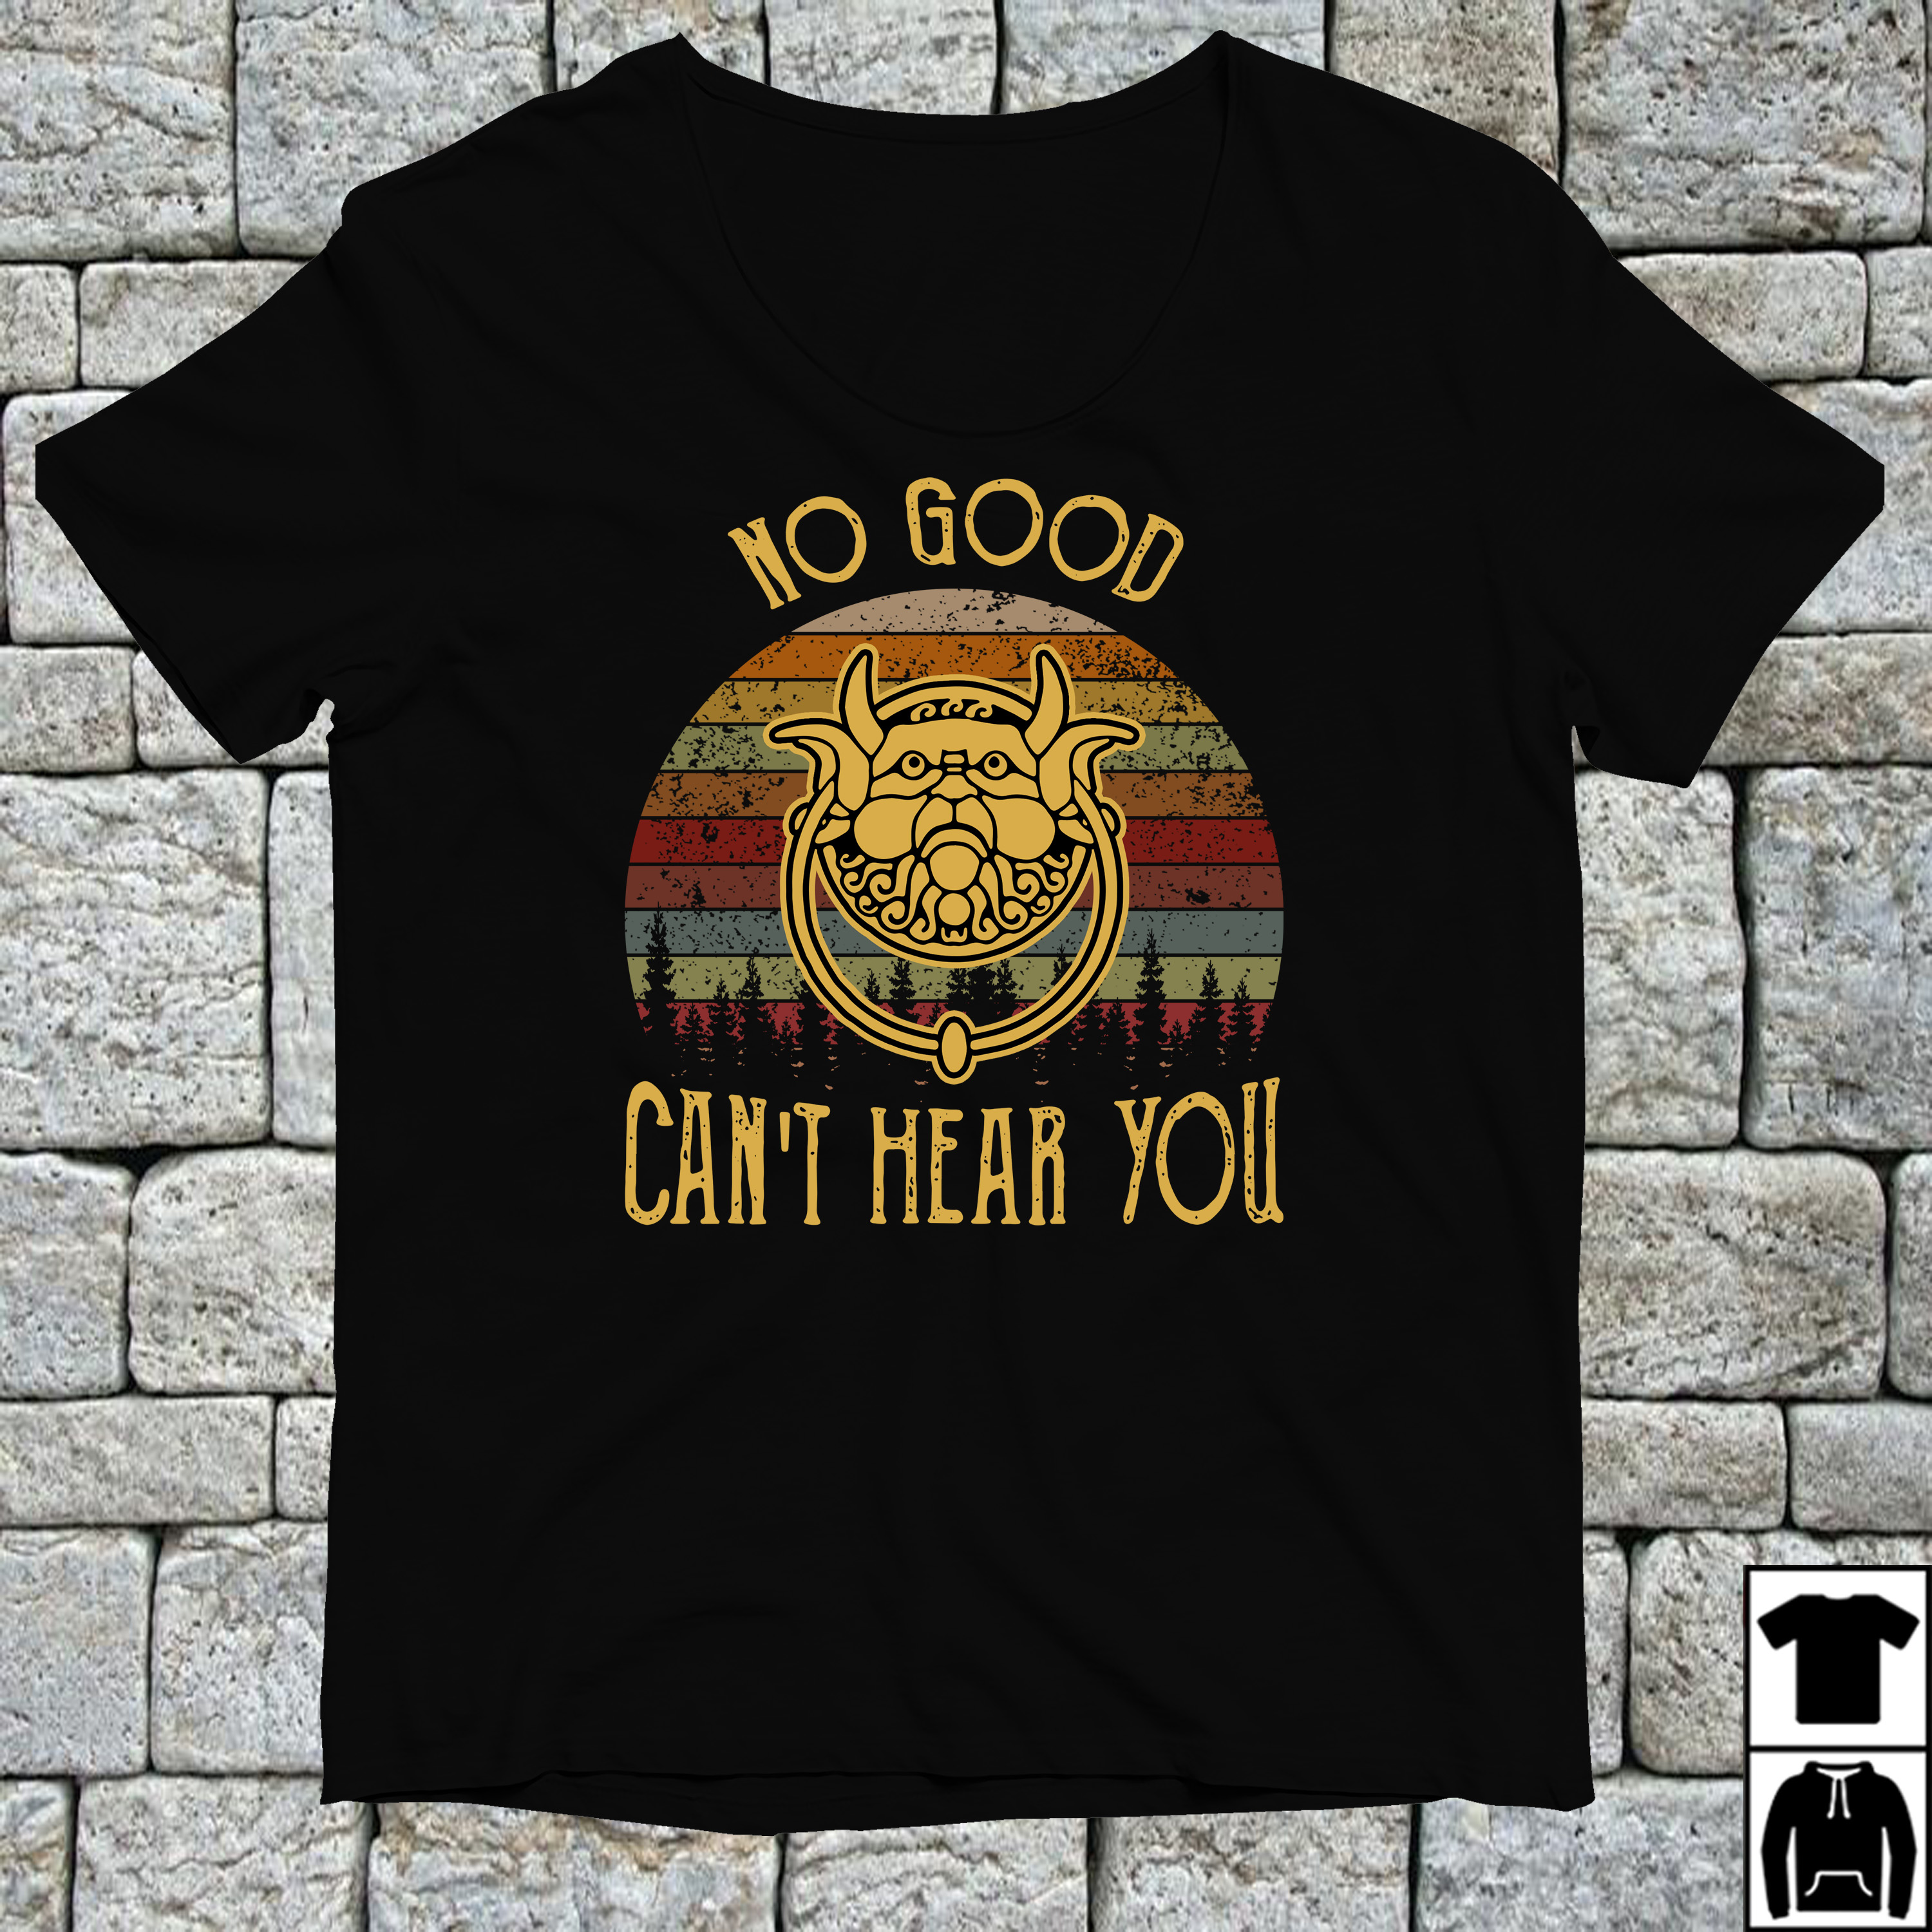 No good can't hear you vintage shirt